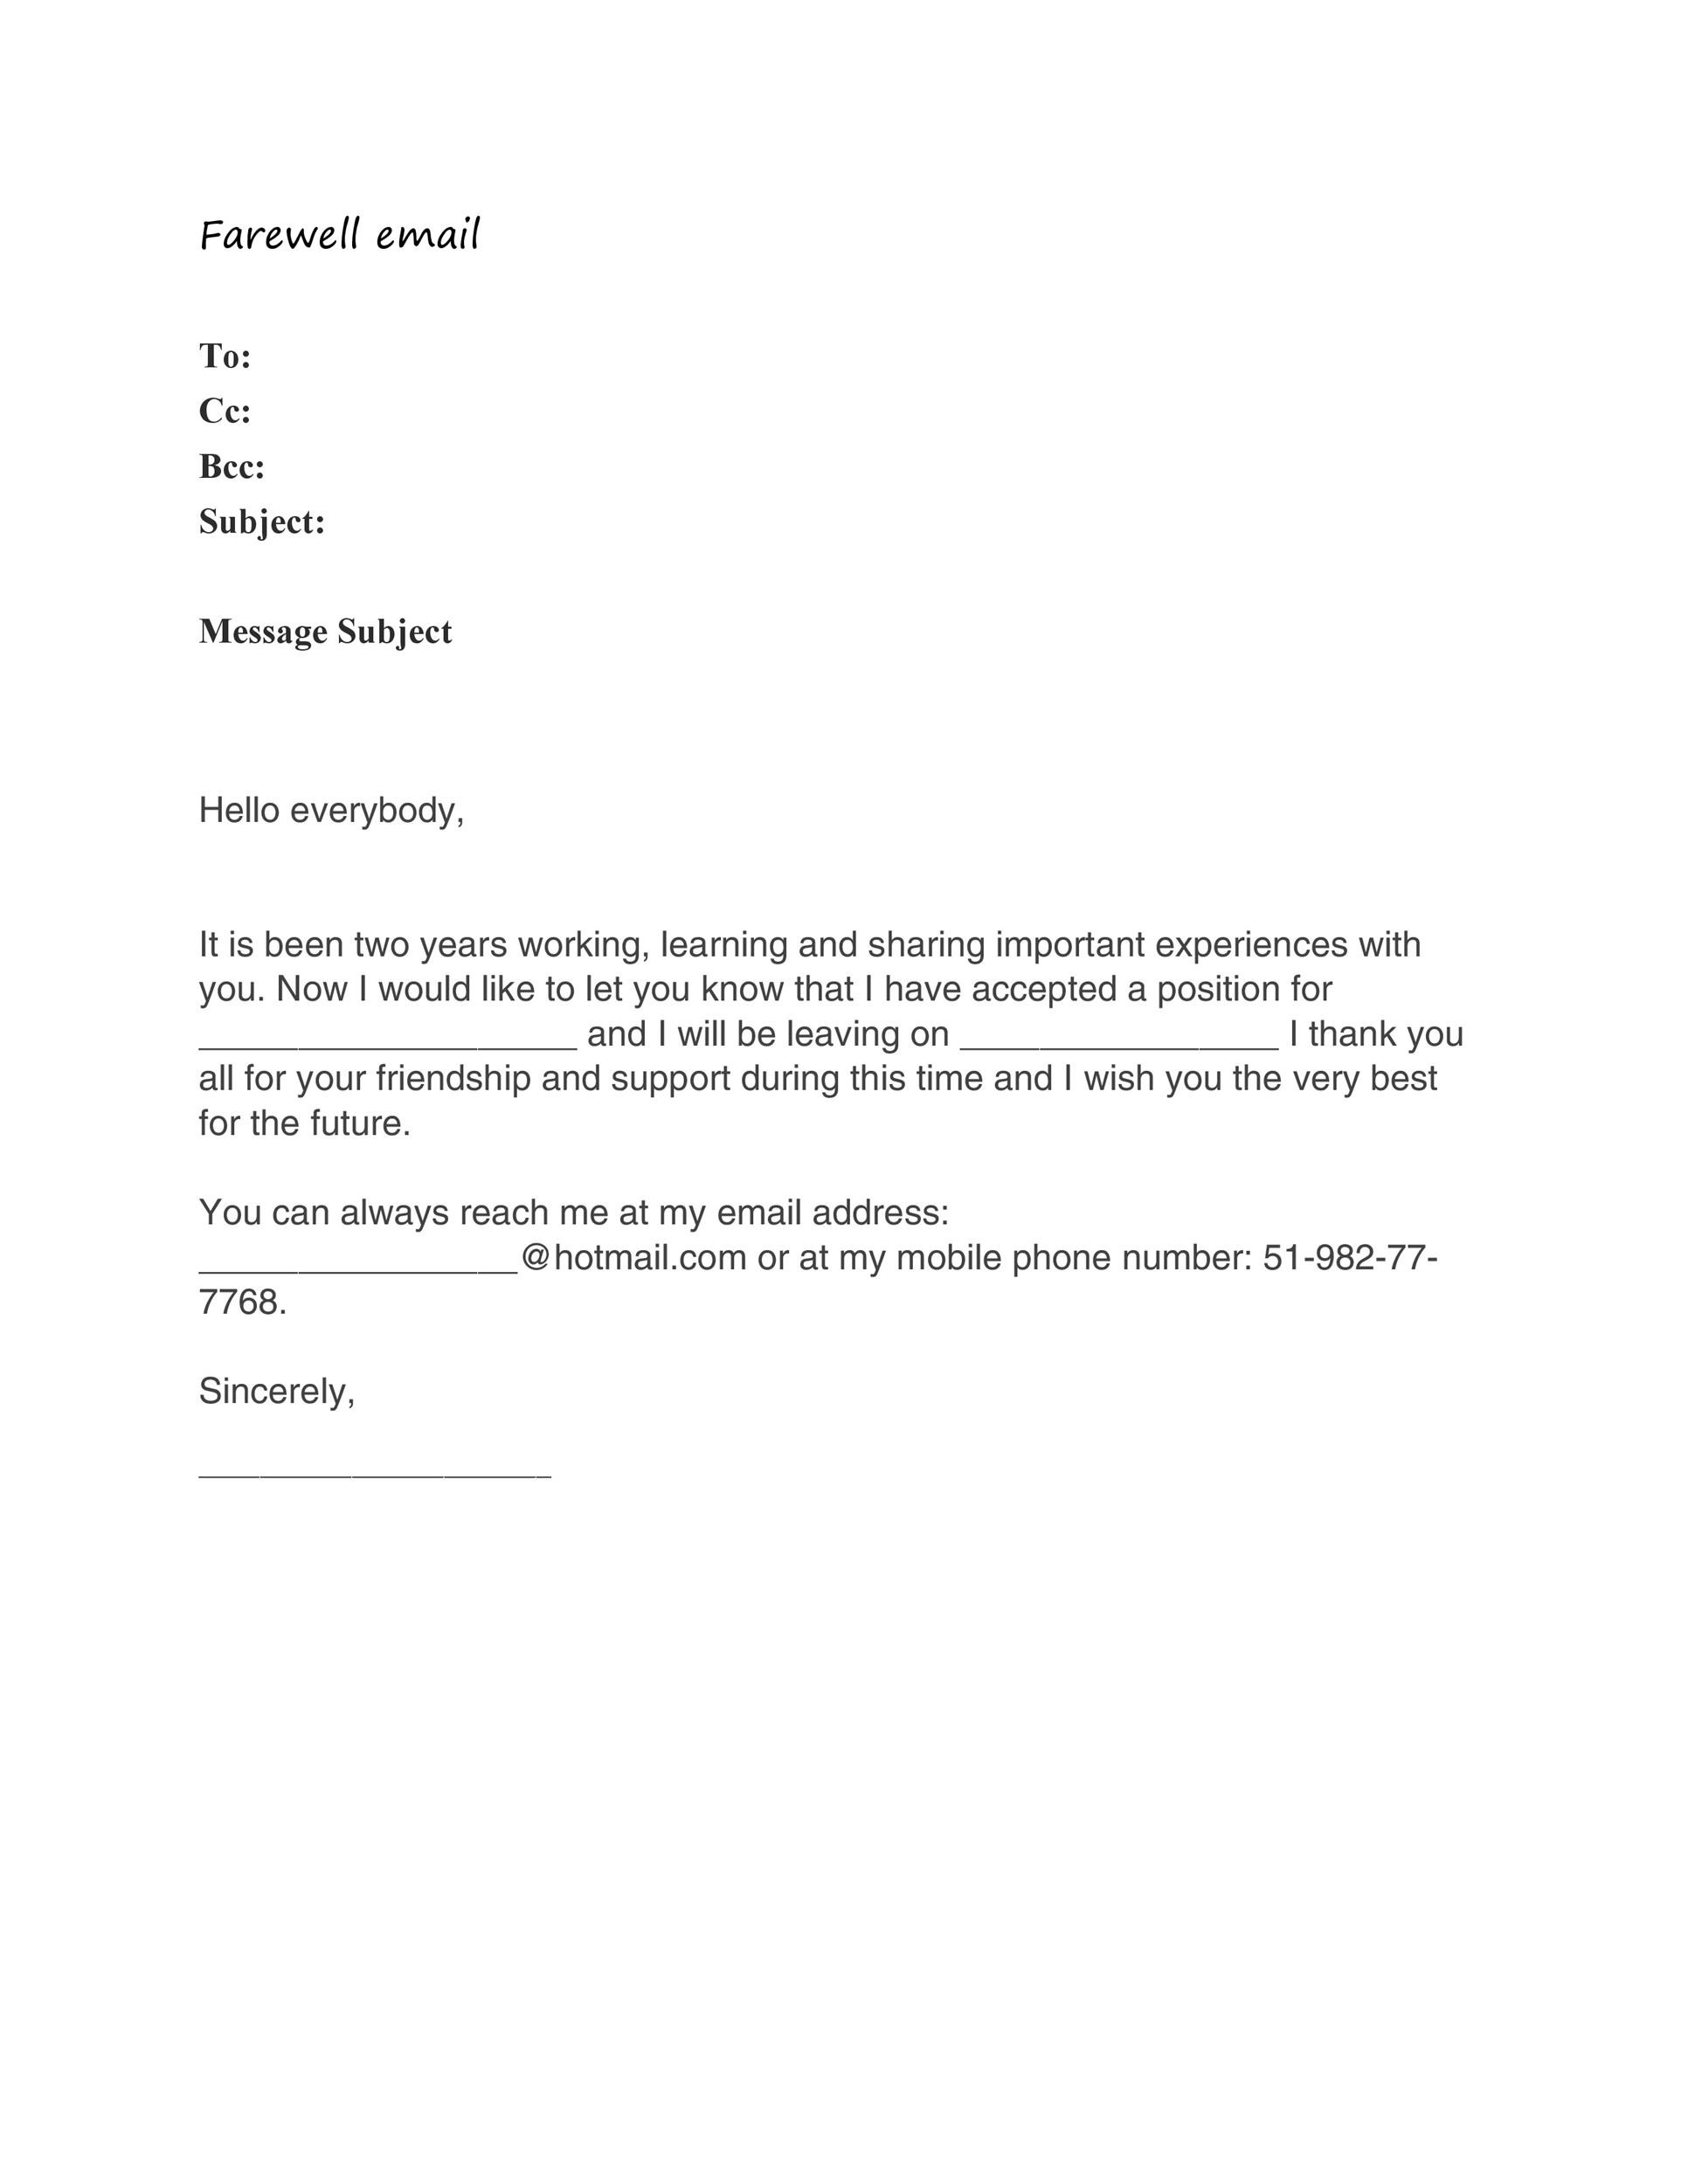 Free farewell email template 08